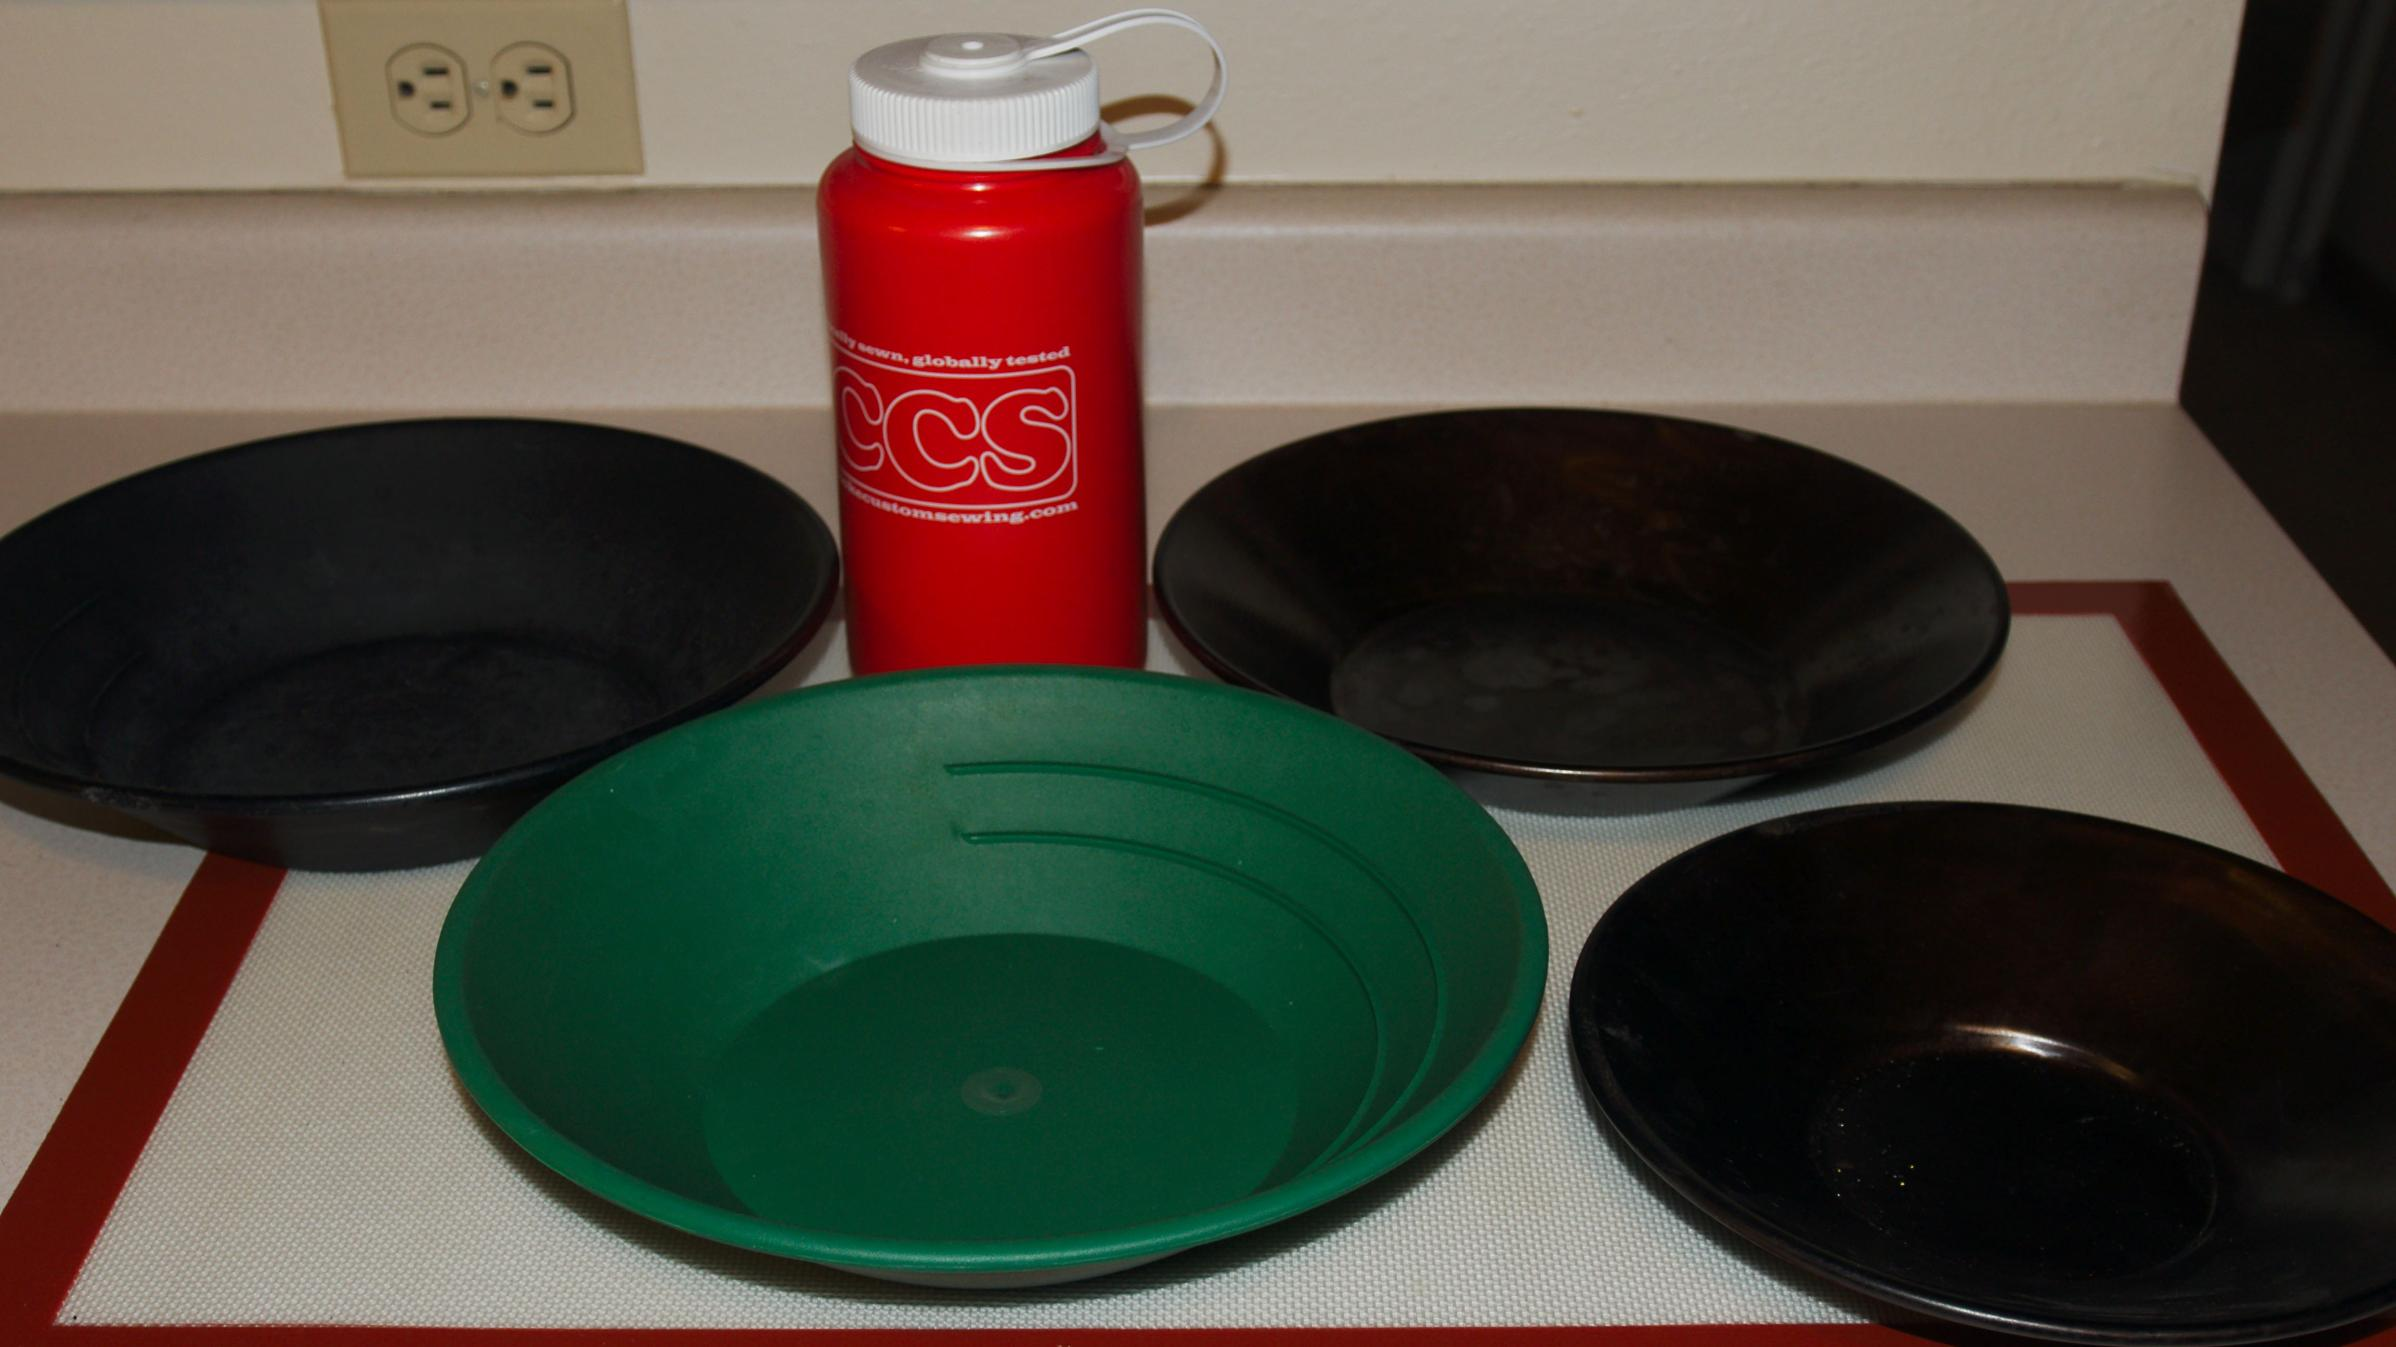 BWCA Cookware/Dishware need suggestions Boundary Waters Gear Forum